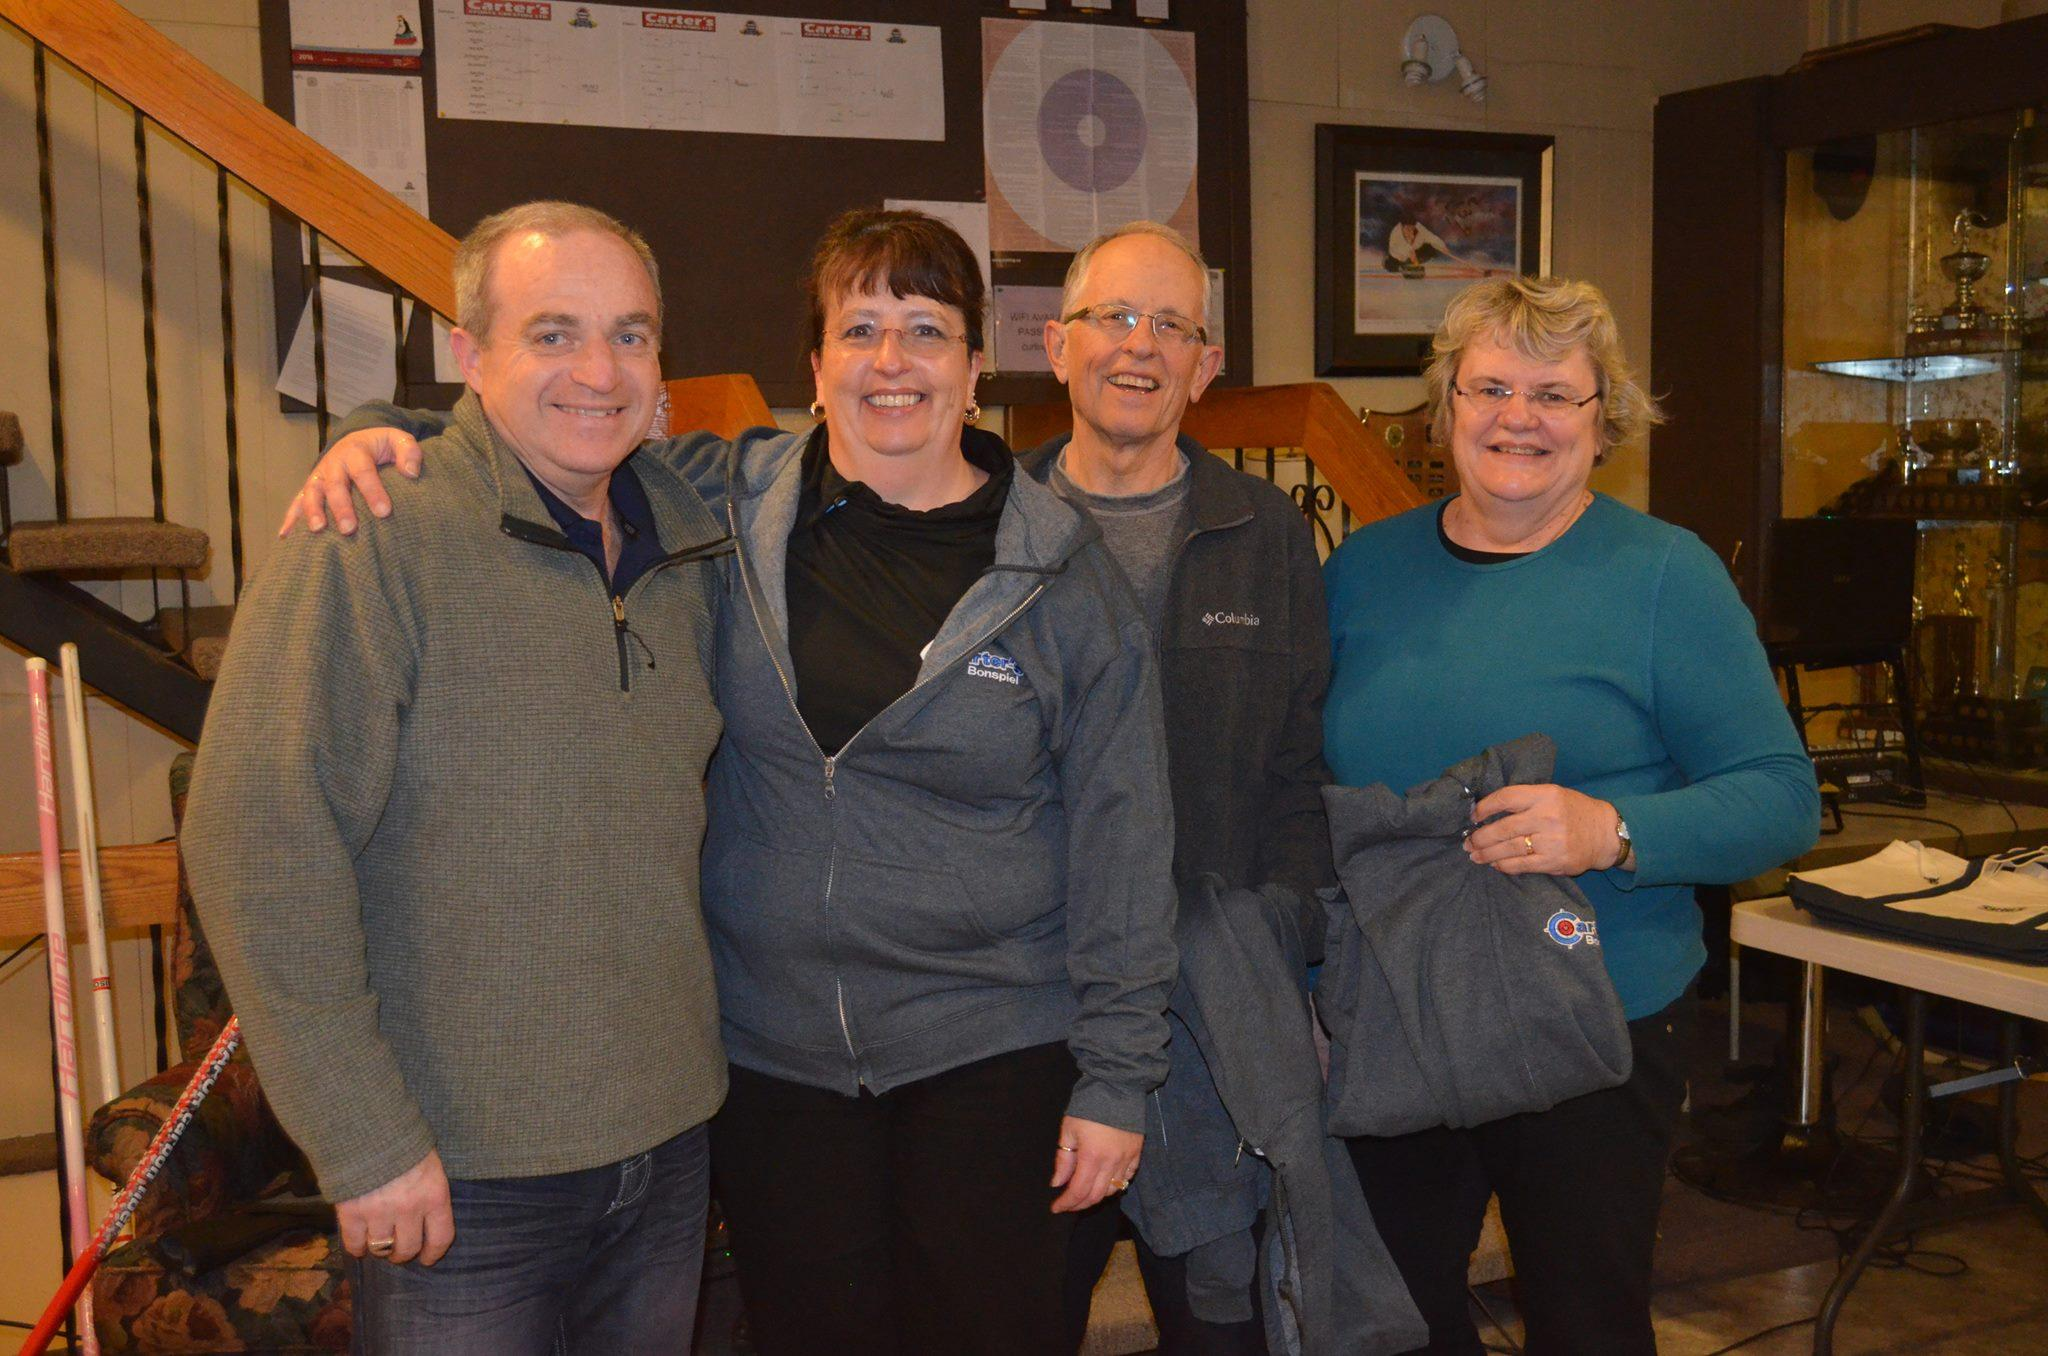 Carter's Sports Cresting Bonspiel 2016 - 1st Runner-Up - Kathy Craib, Ed Gogan, Rob LeMoine, Cindy Cameron